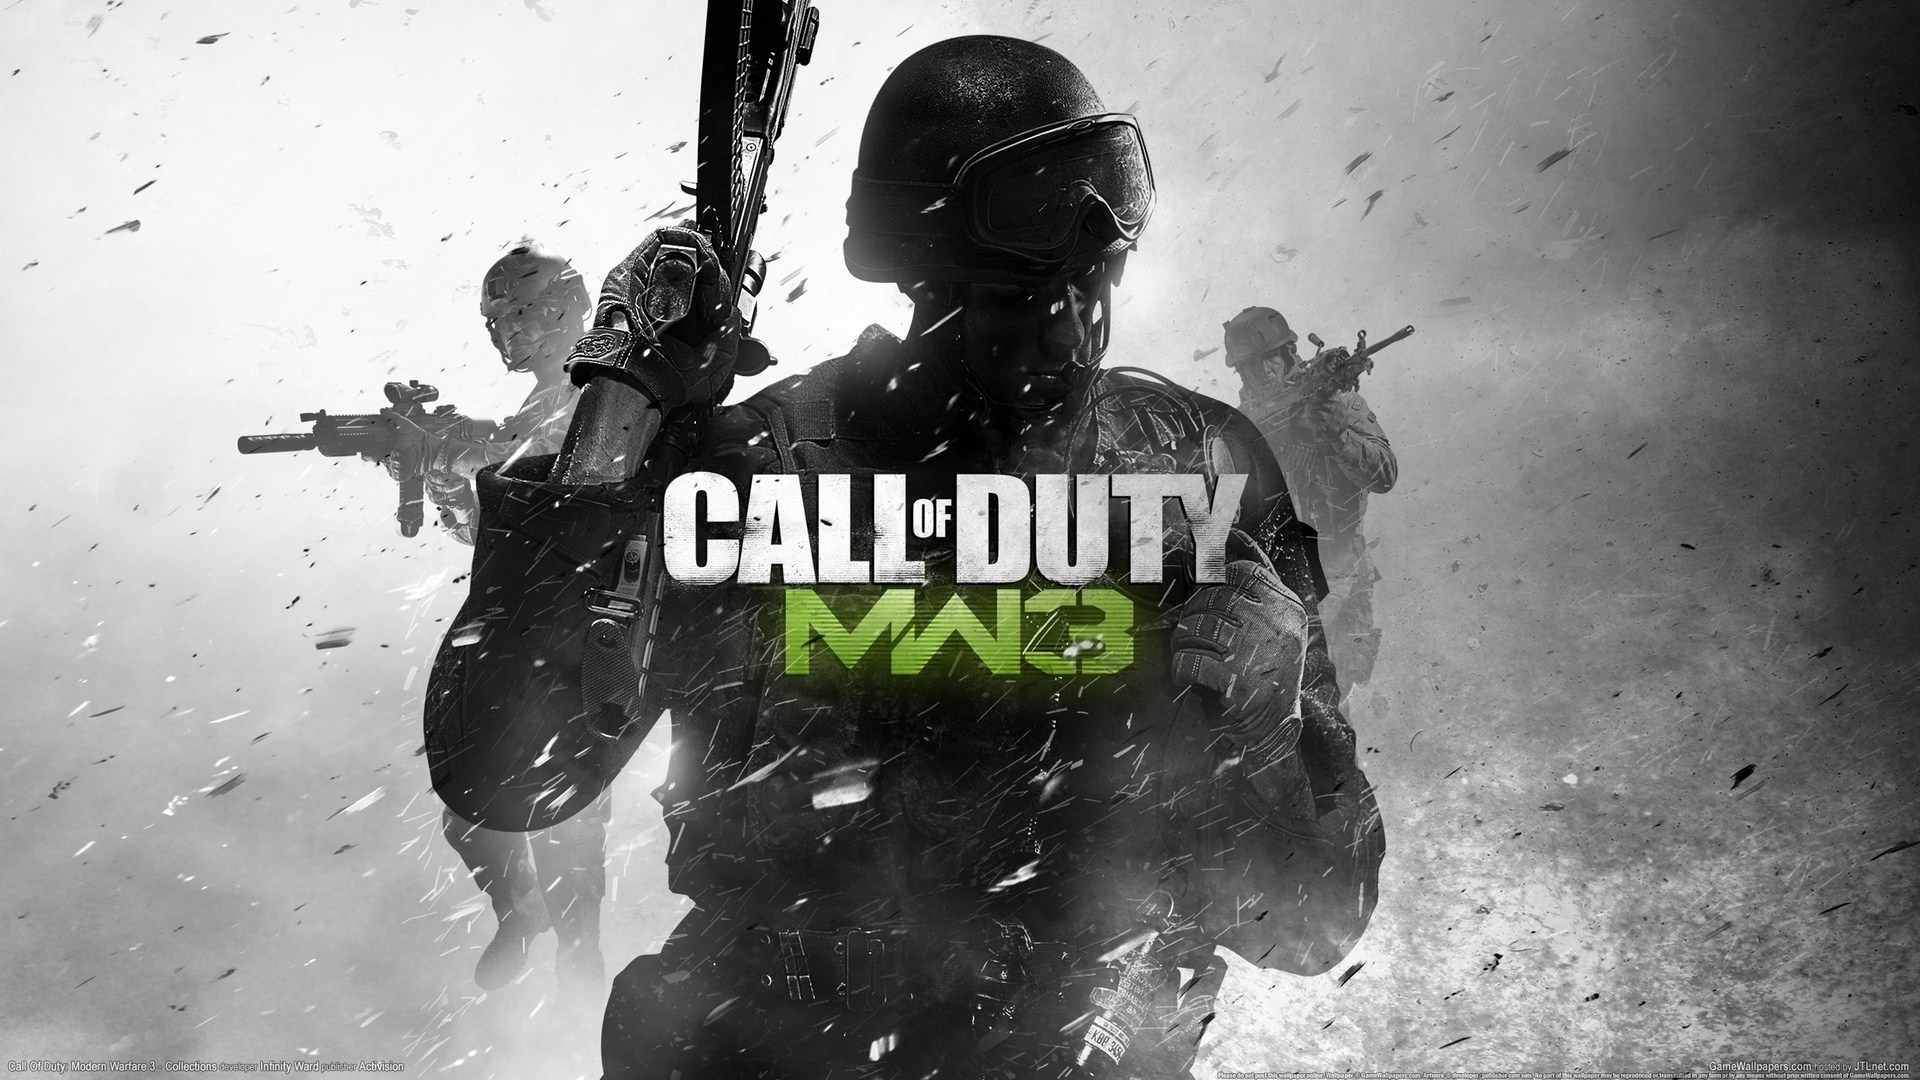 Overall, Call of Duty Modern Warfare 2 is known to be one of the best Call of Duty games ever made. Call of Duty Modern Warfare 2 Torrent Instructions Click the download button below and you will be asked if you want to open the torrent.